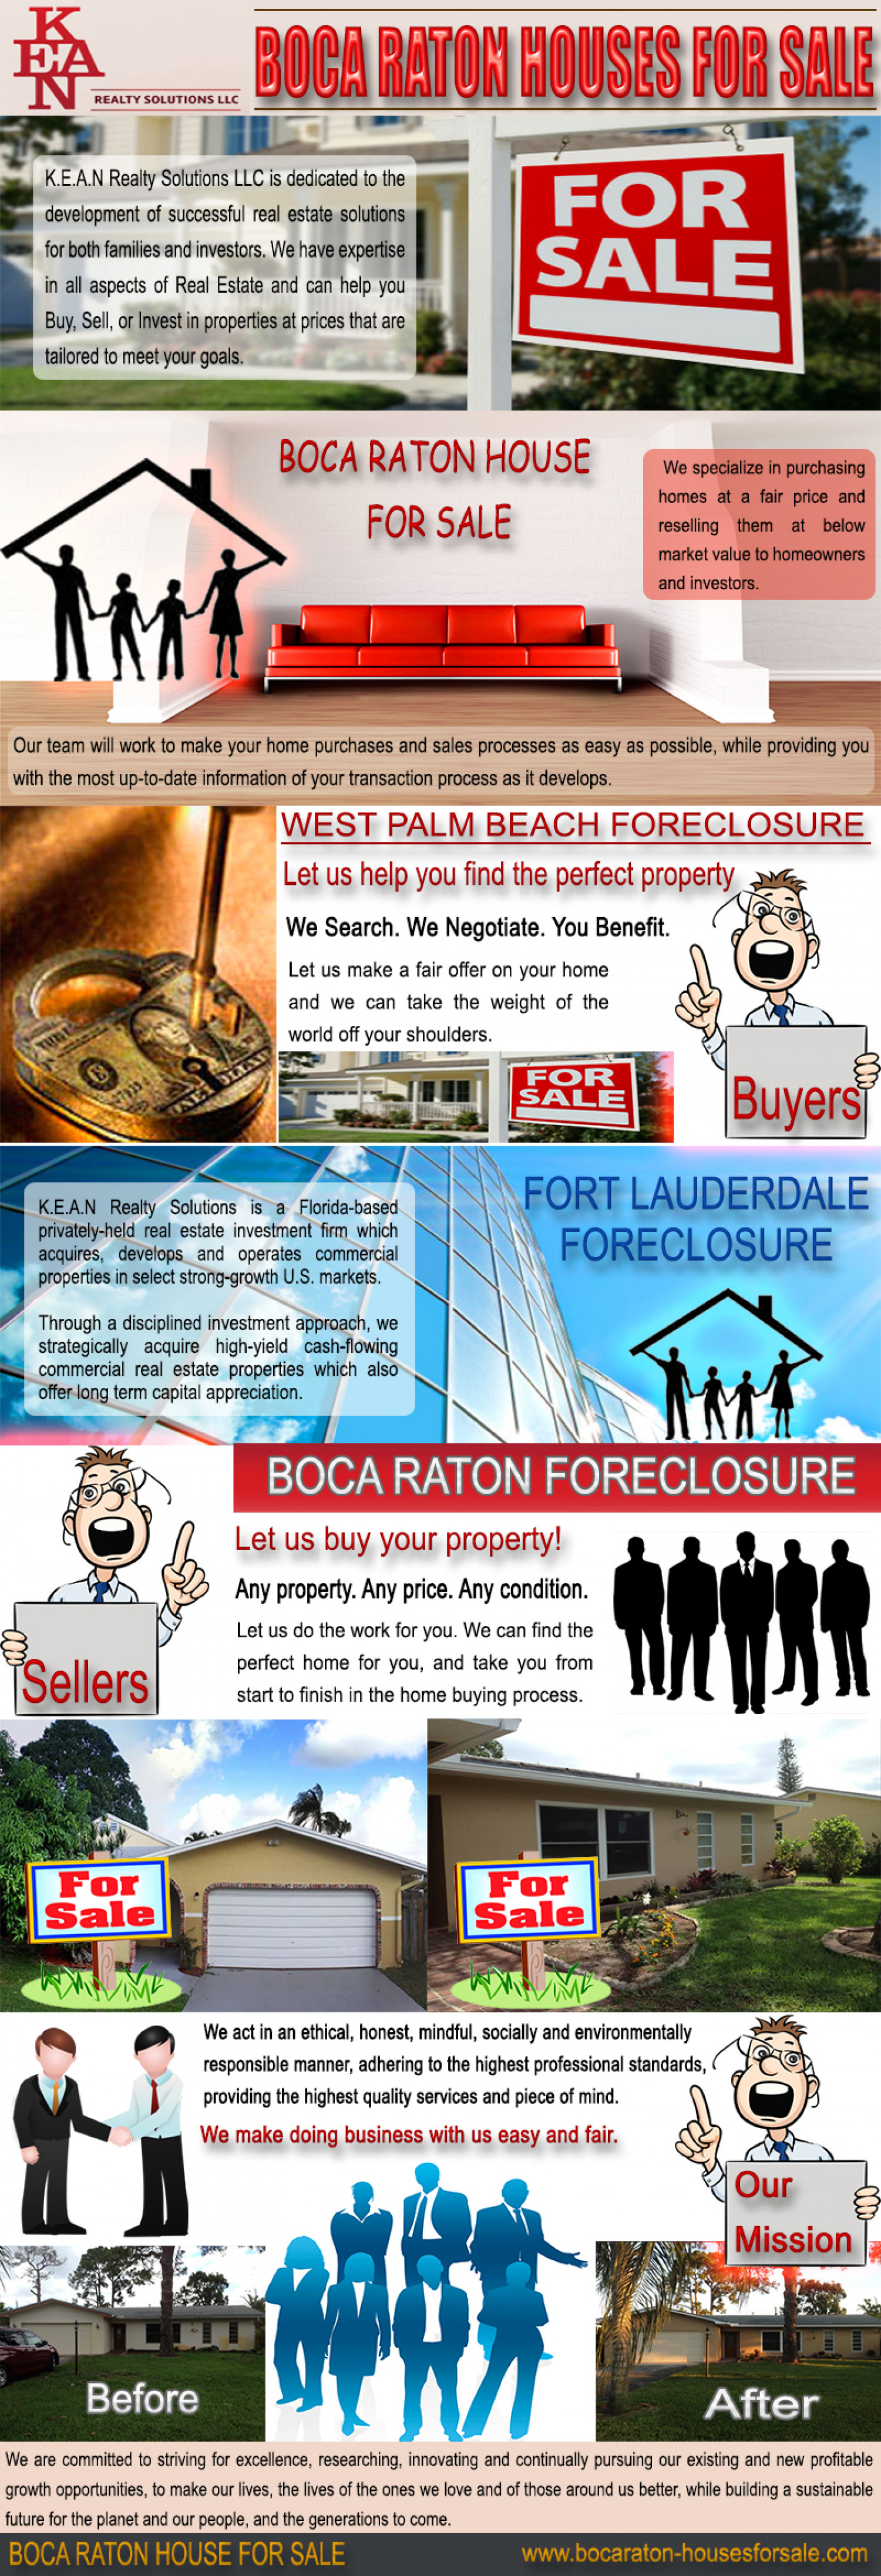 Boca Raton Houses For Sale